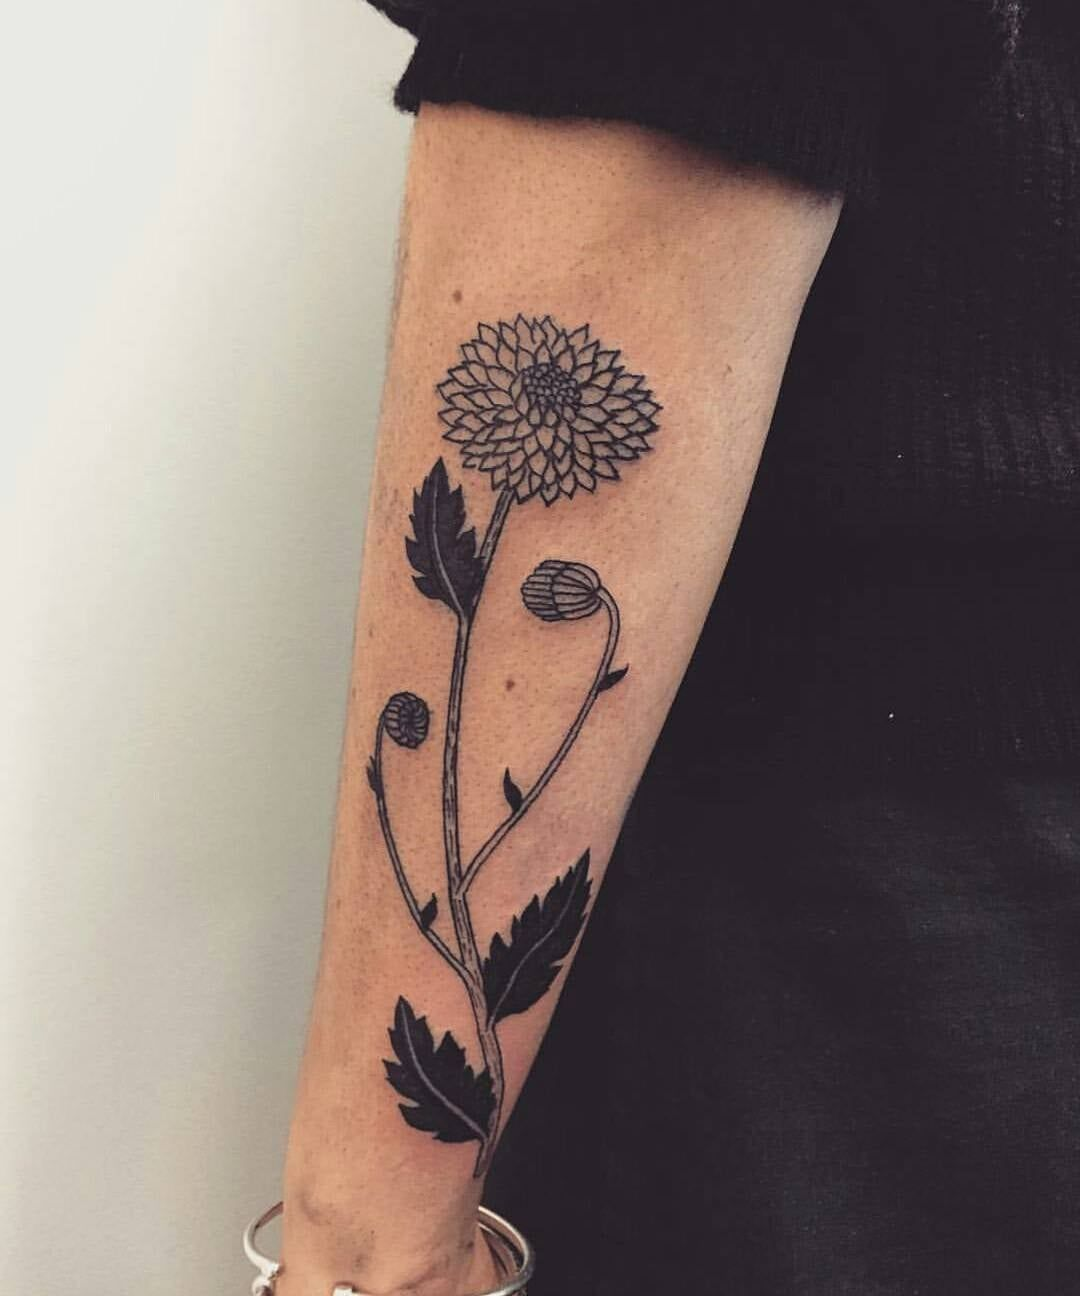 These Birth Flower Tattoos Will Make You Forget About Your Zodiac Sign Birth Flower Tattoos Birth Flowers Tattoos For Women Small Meaningful